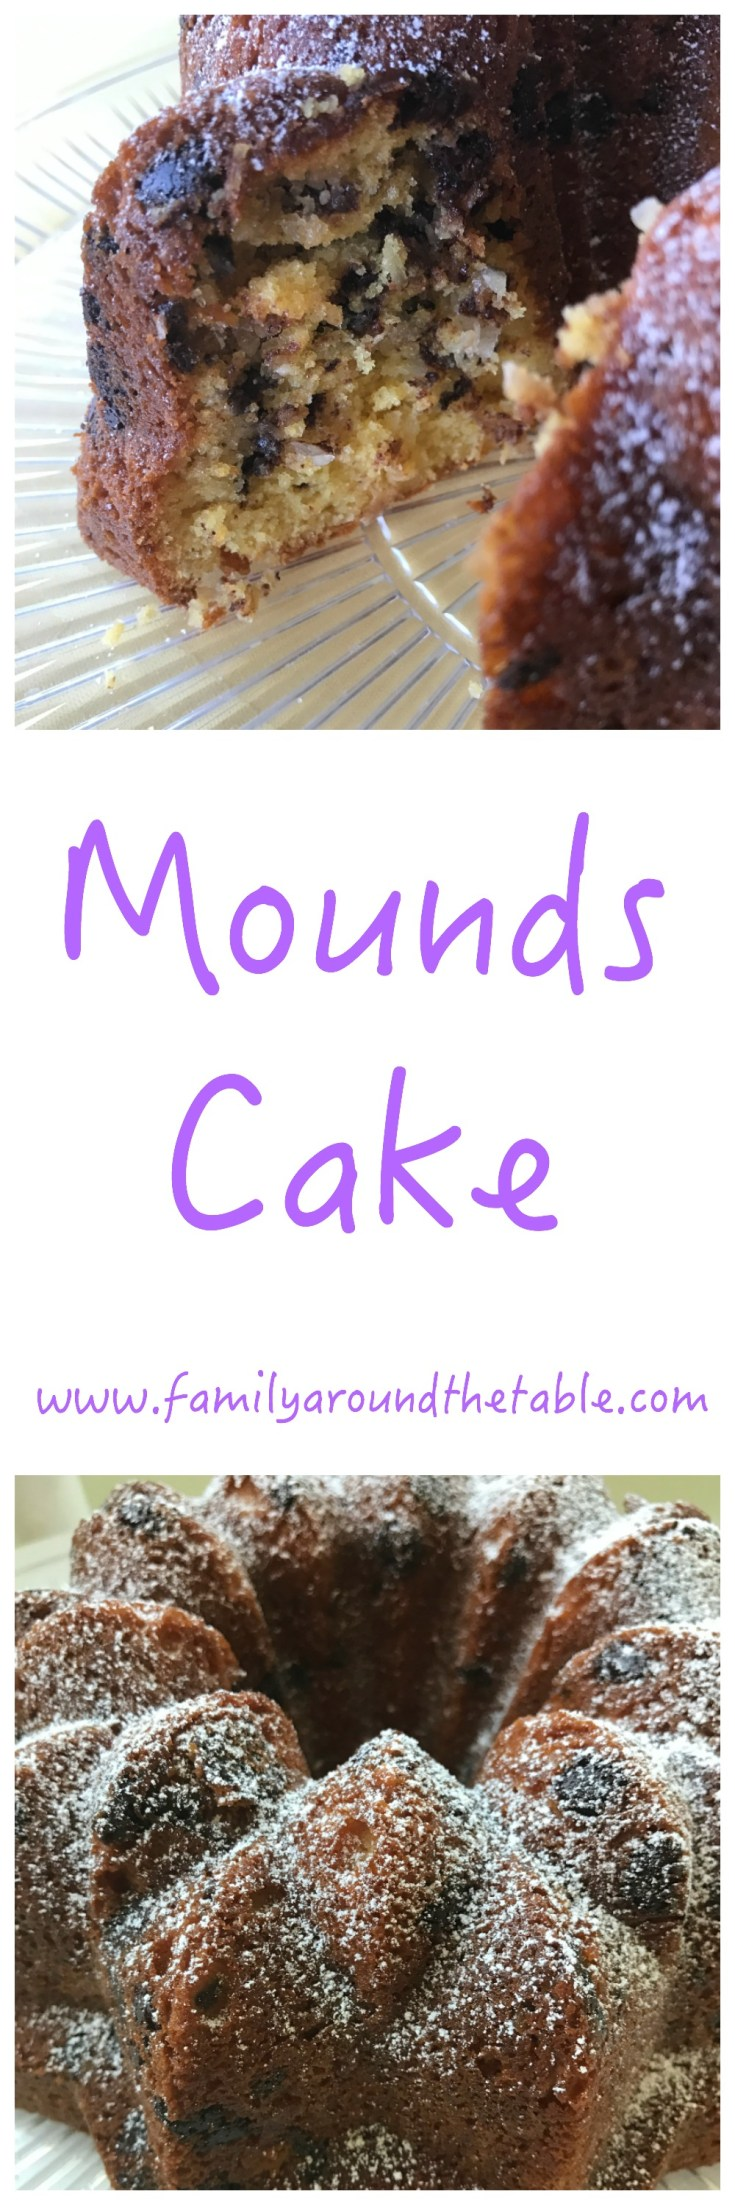 Mounds cake has all the sweet Easter flavors including chocolate and coconut.